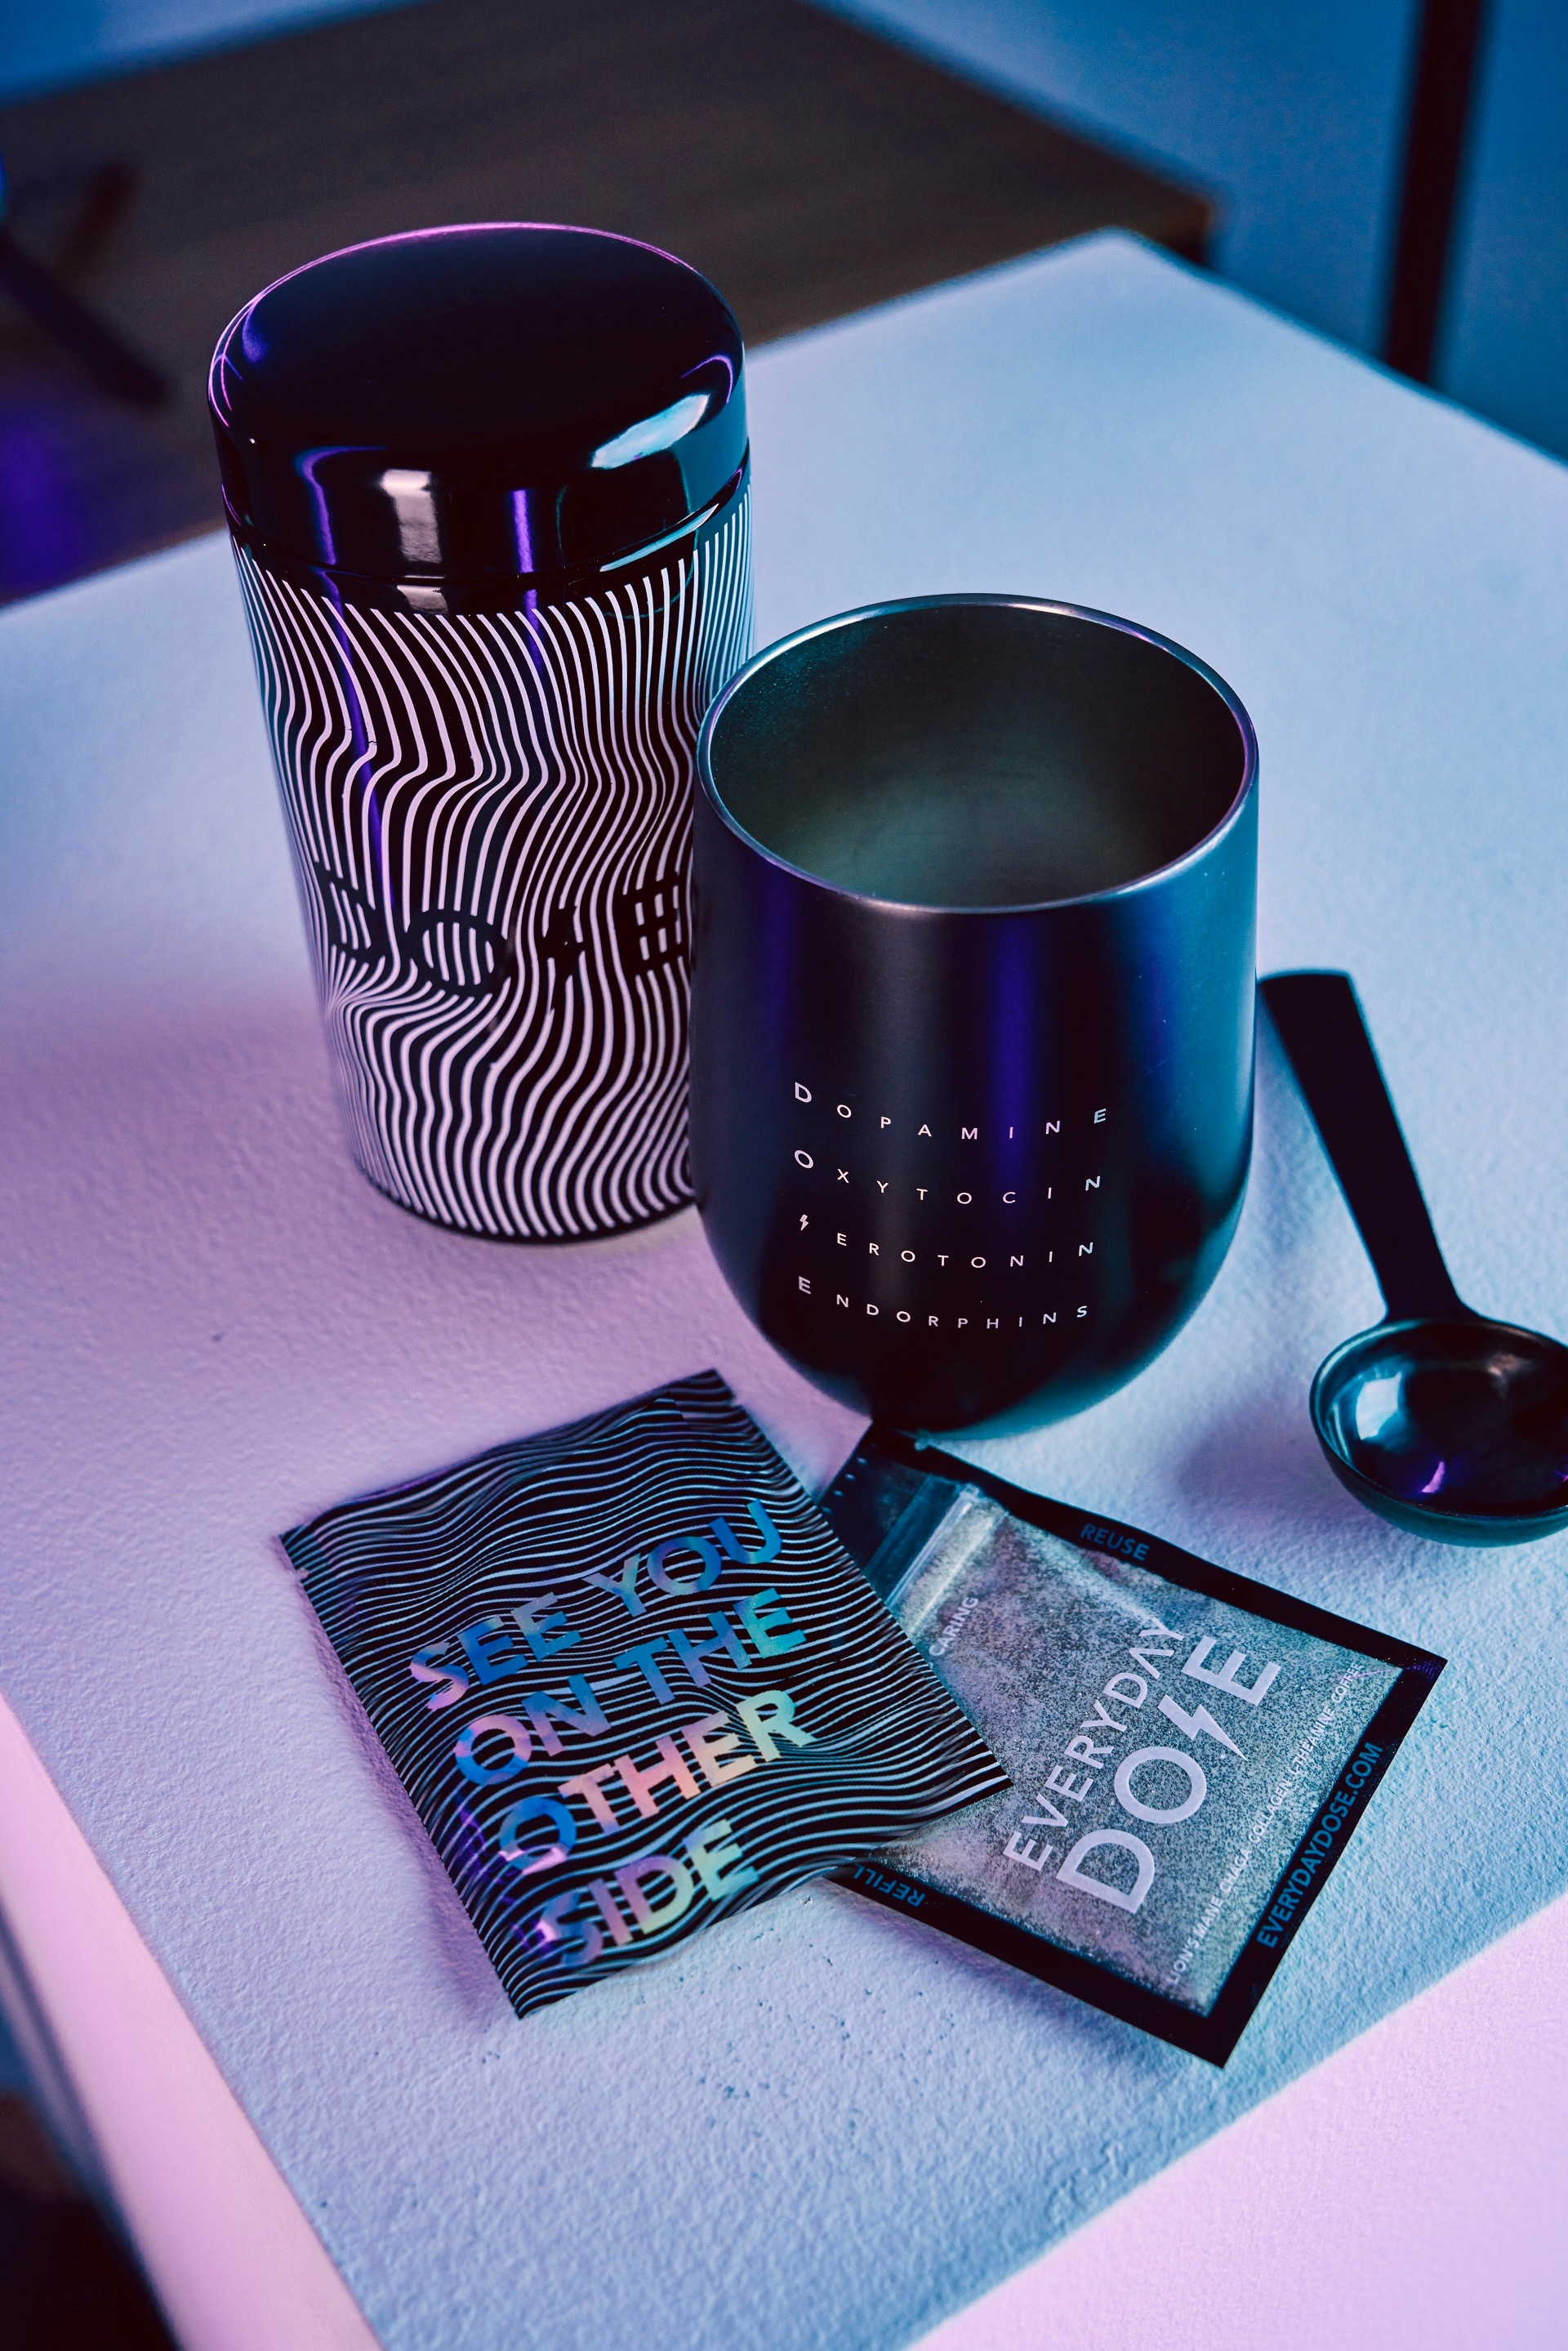 A Mushroom Powder Container with a lot of extra gifts - Coffee Mug - Dose Spoon - Everyday Dose - The Mushroom Latte